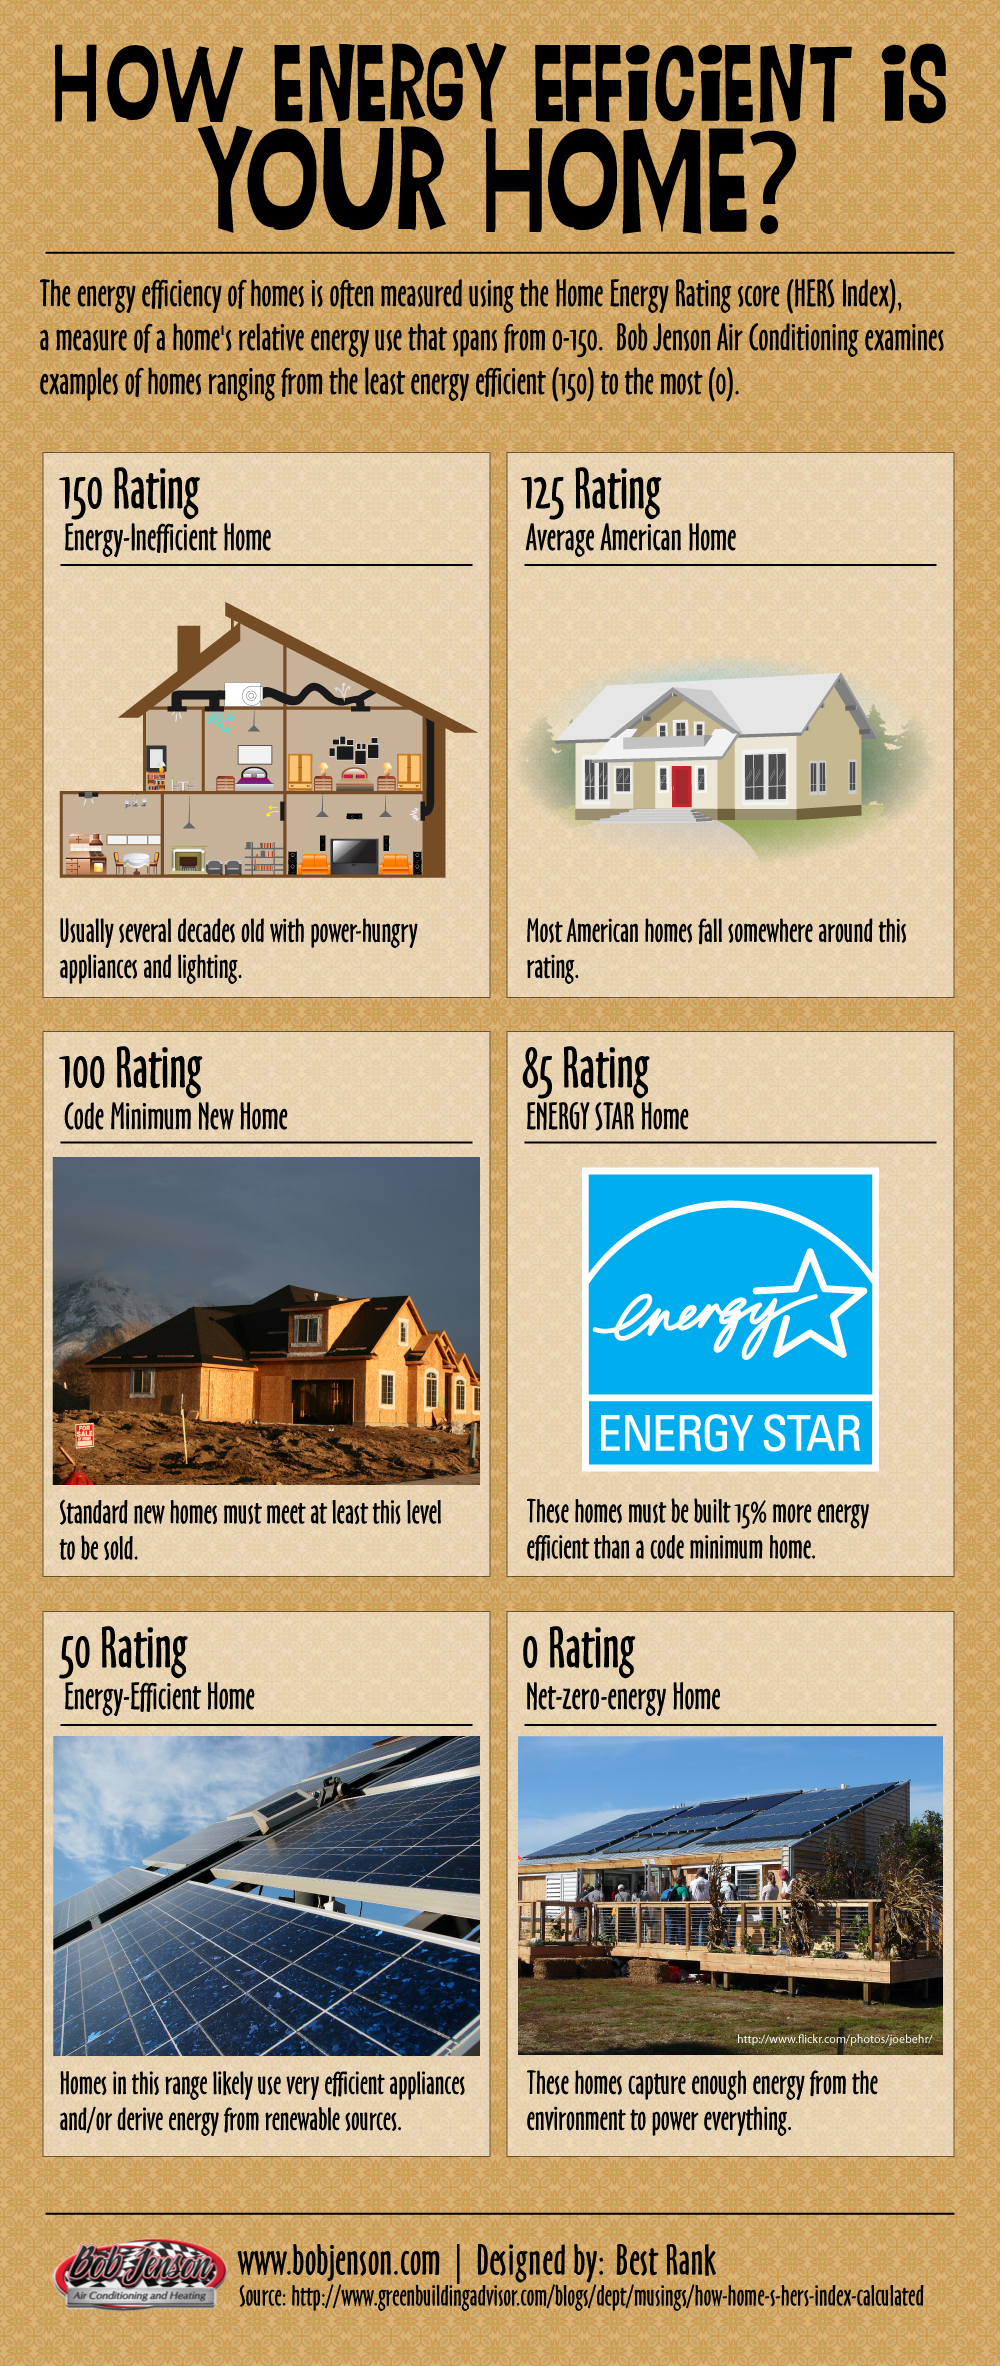 how-energy-efficient-is-your-home_521554749254d